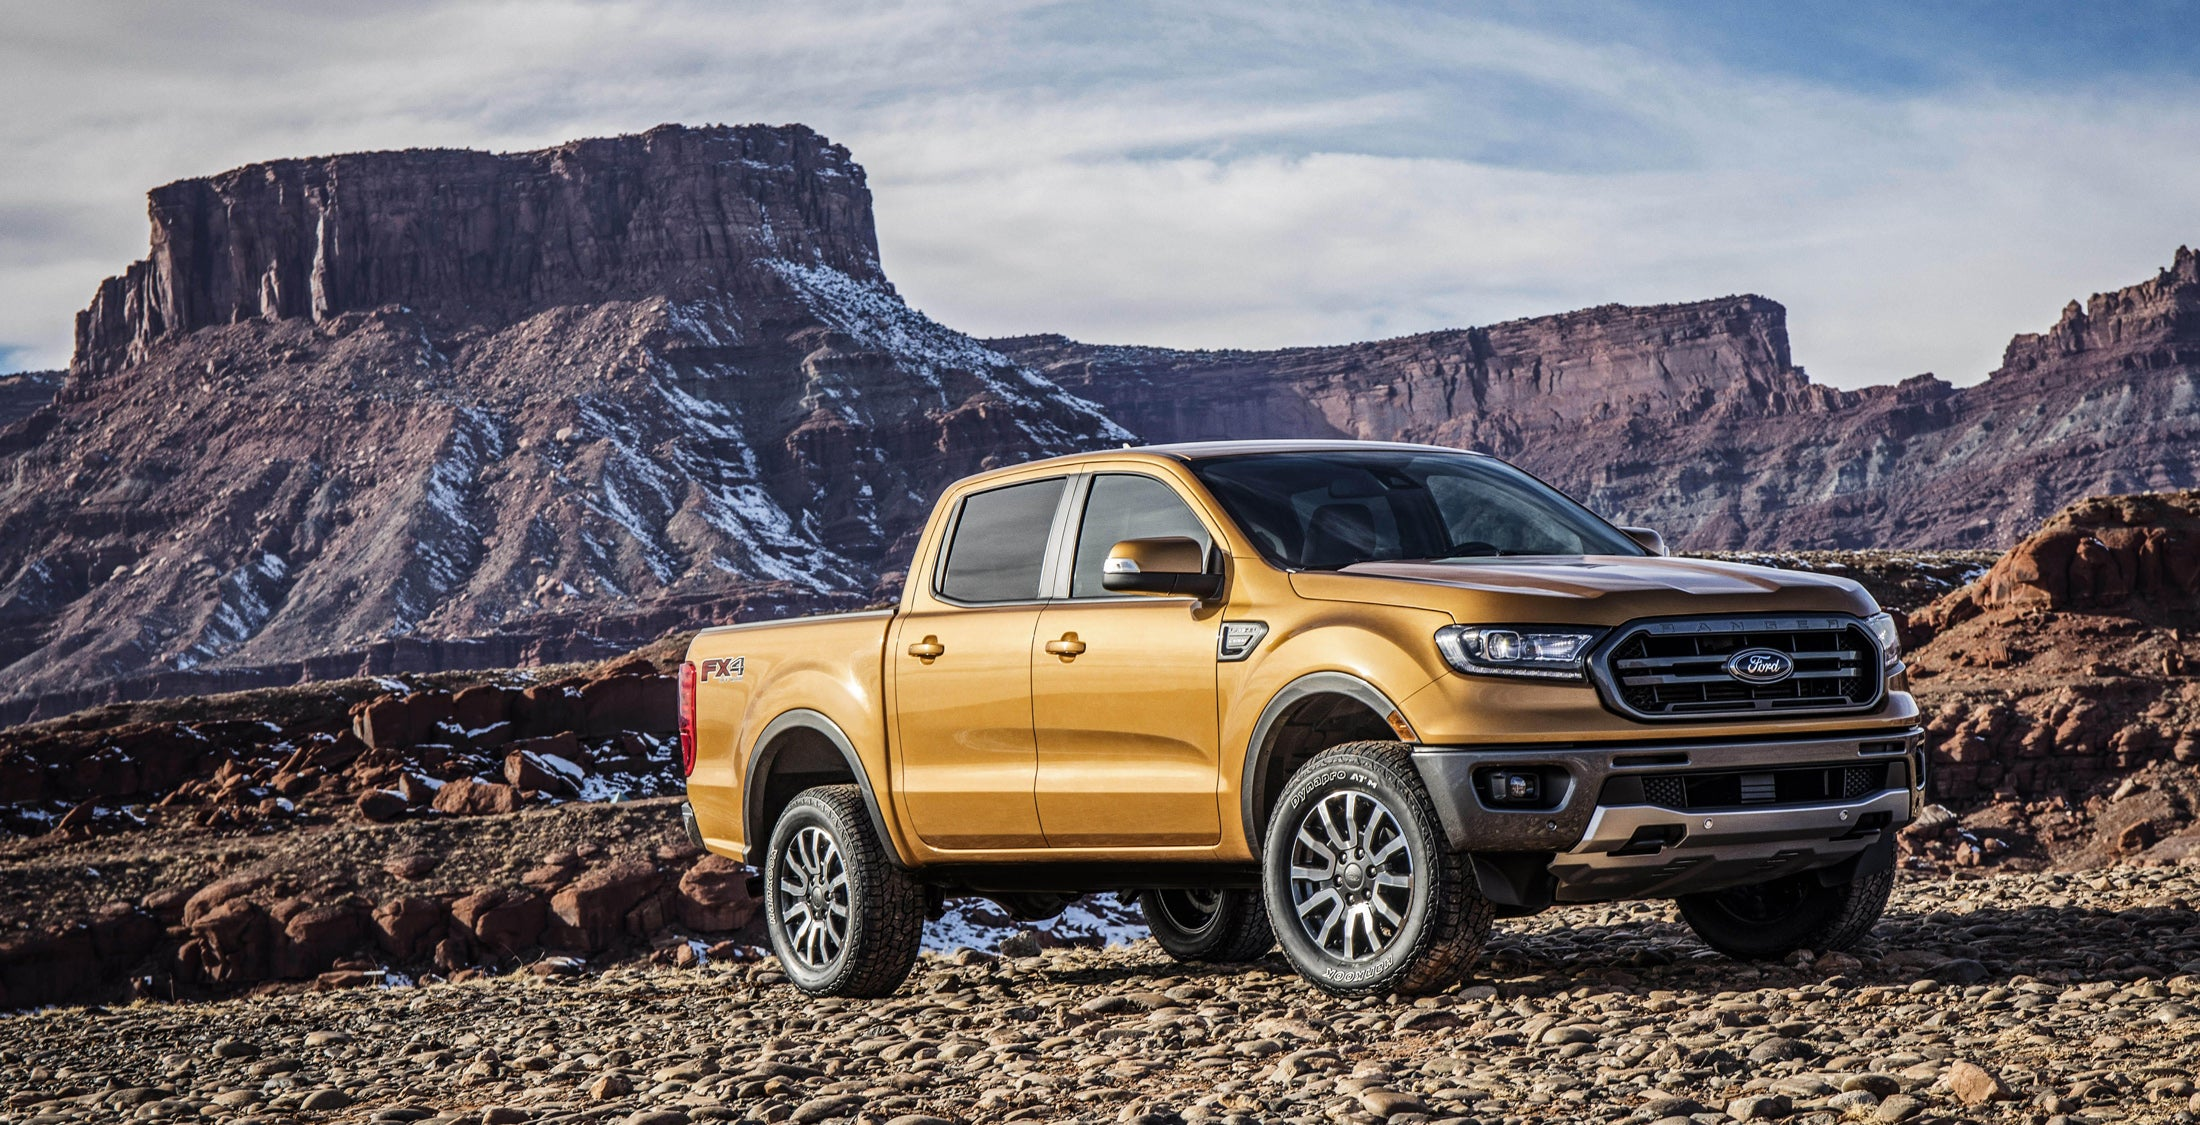 Ford Ranger 2019: The beloved, iconic pick-up truck is ...